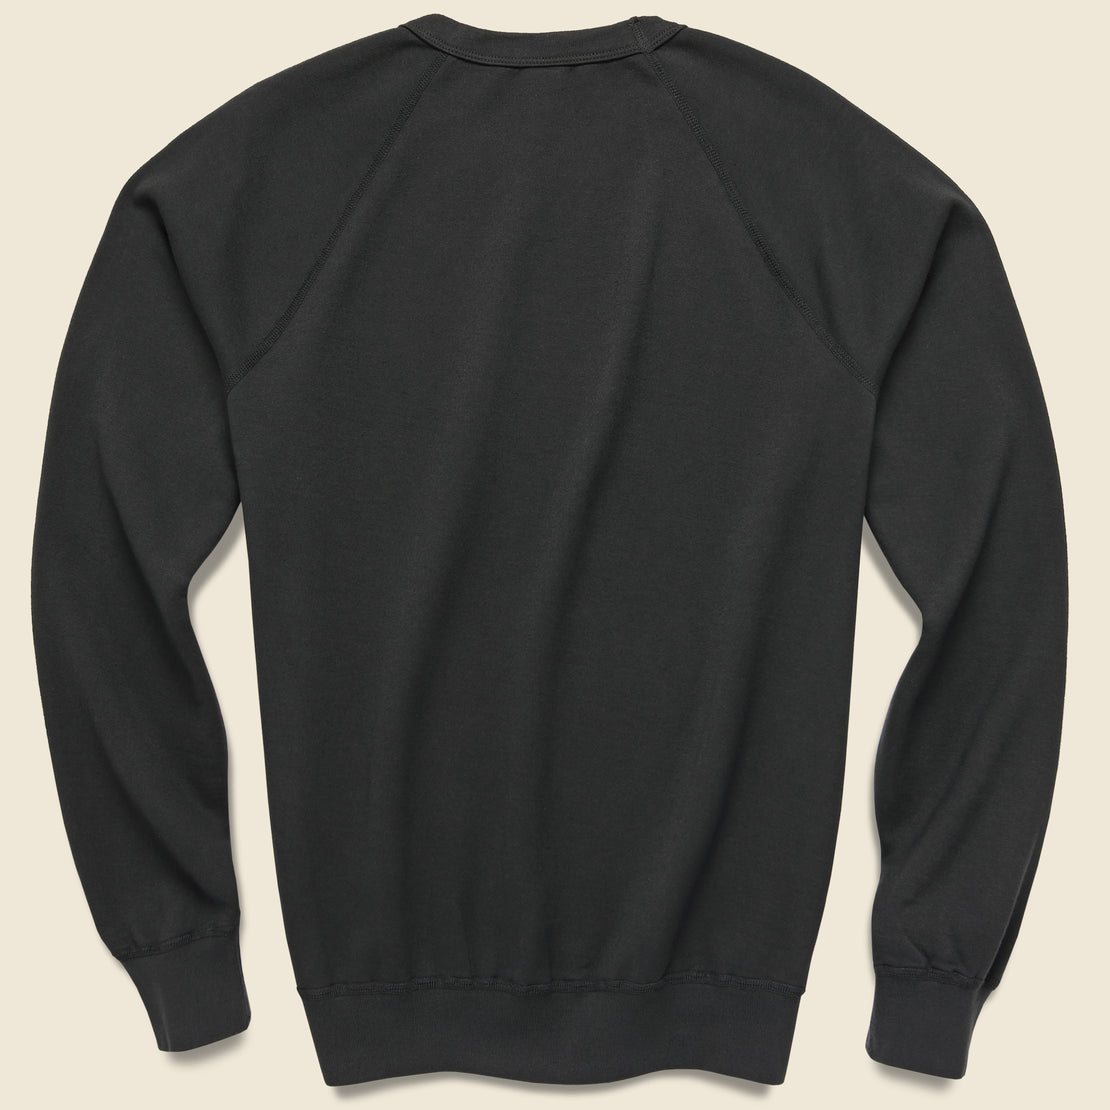 Supima Fleece Sweatshirt - Black